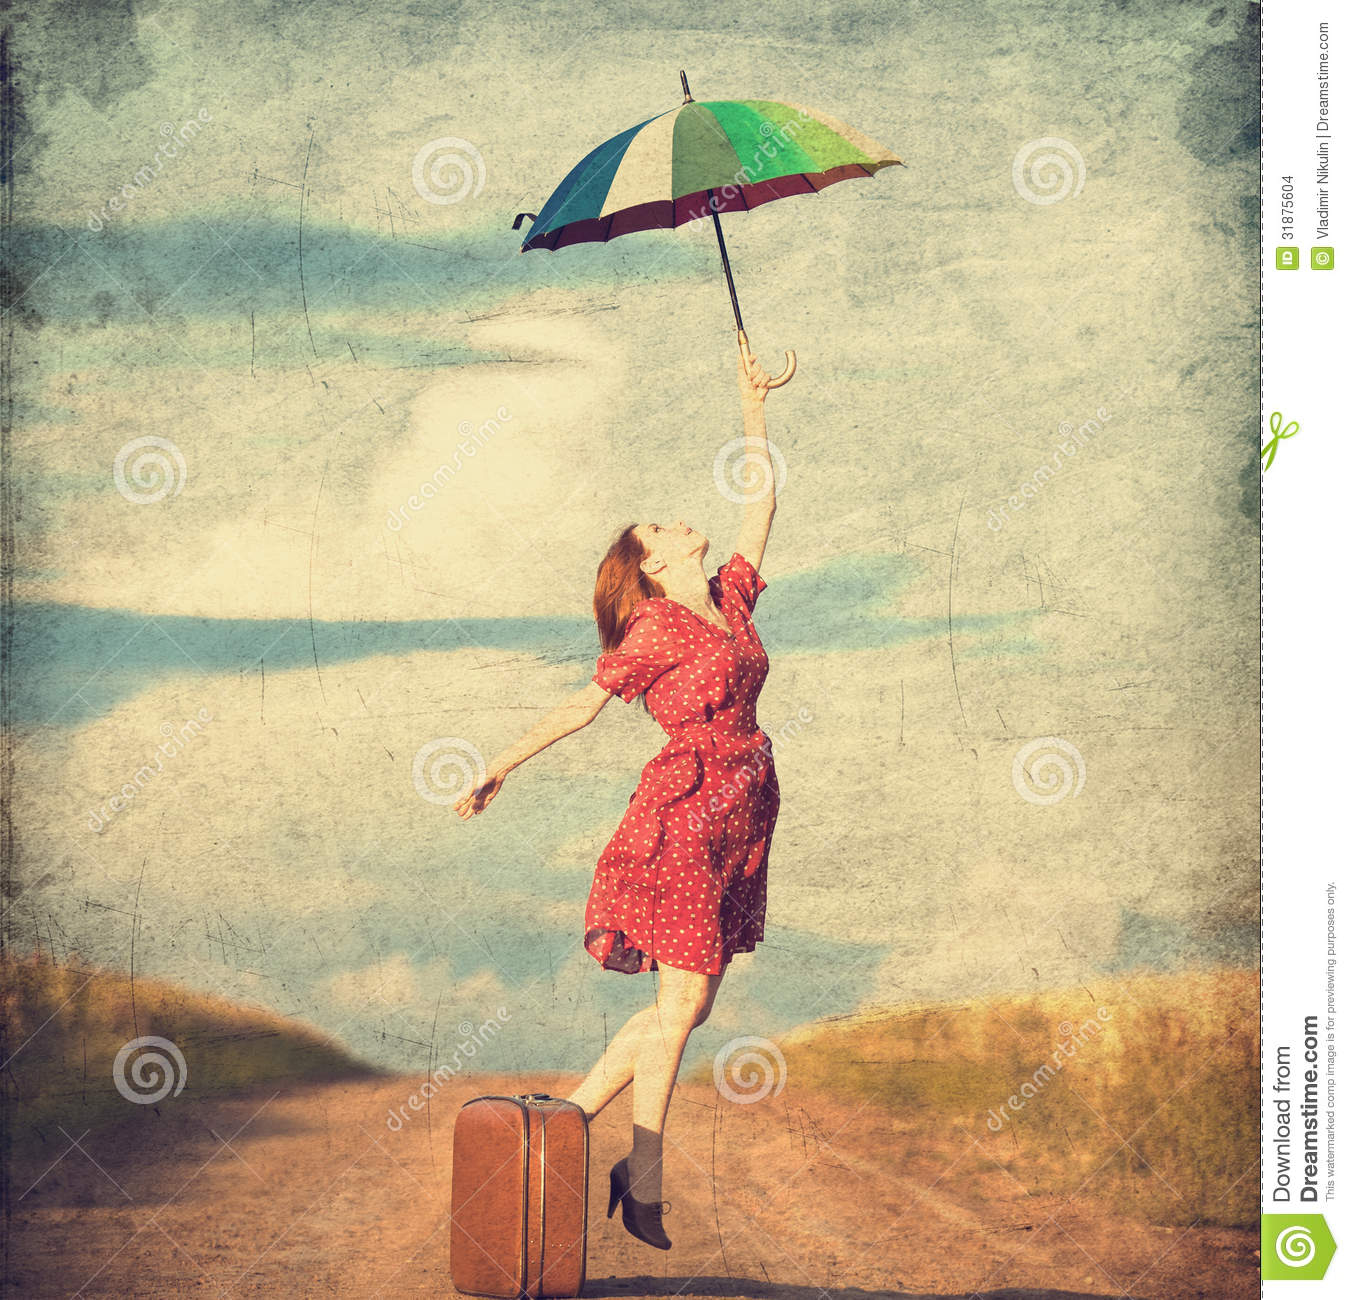 Girl With Umbrella Stock Images - Image: 31875604